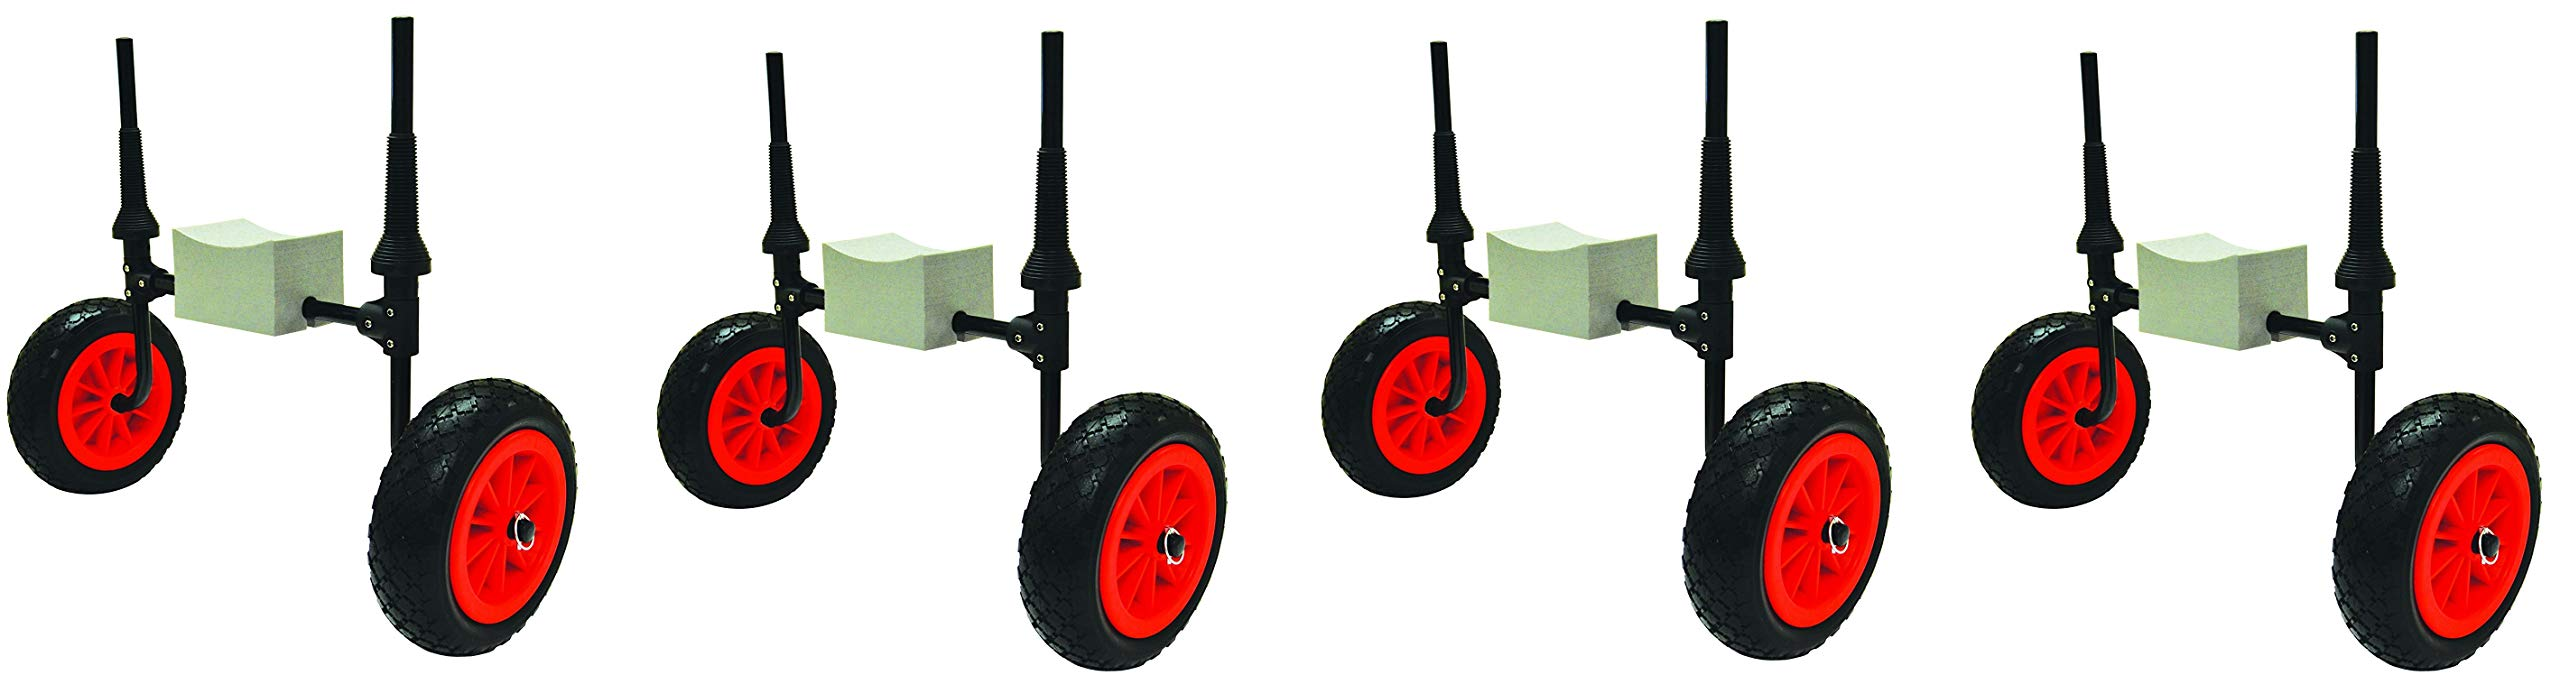 Malone Xpress Scupper-Style Kayak Cart for Sit-On-Top Kayaks (Pack of 4) by Malone